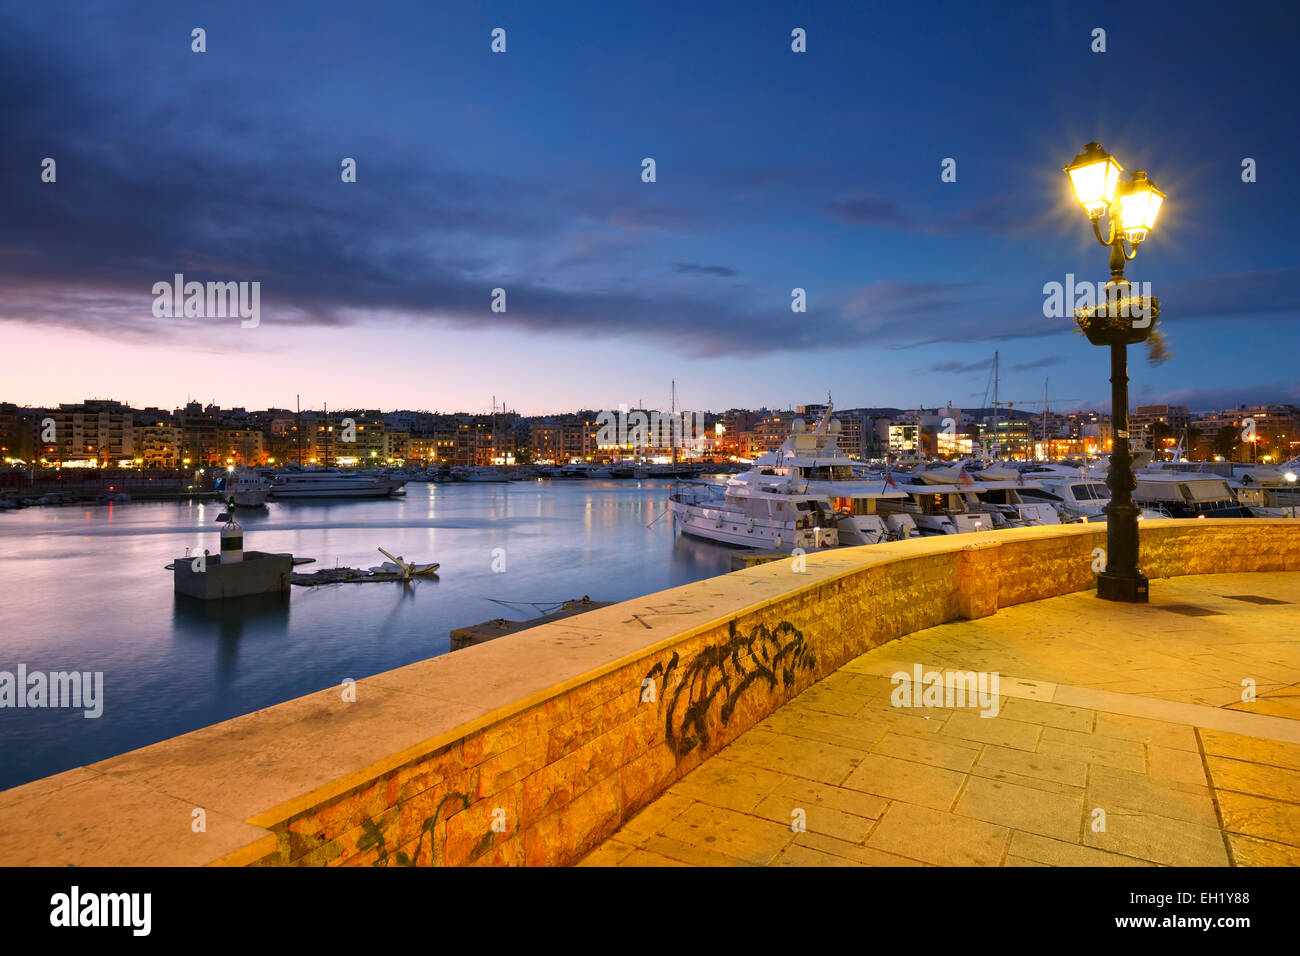 Zea Marina as seen from the promenade, Athens, Greece. - Stock Image